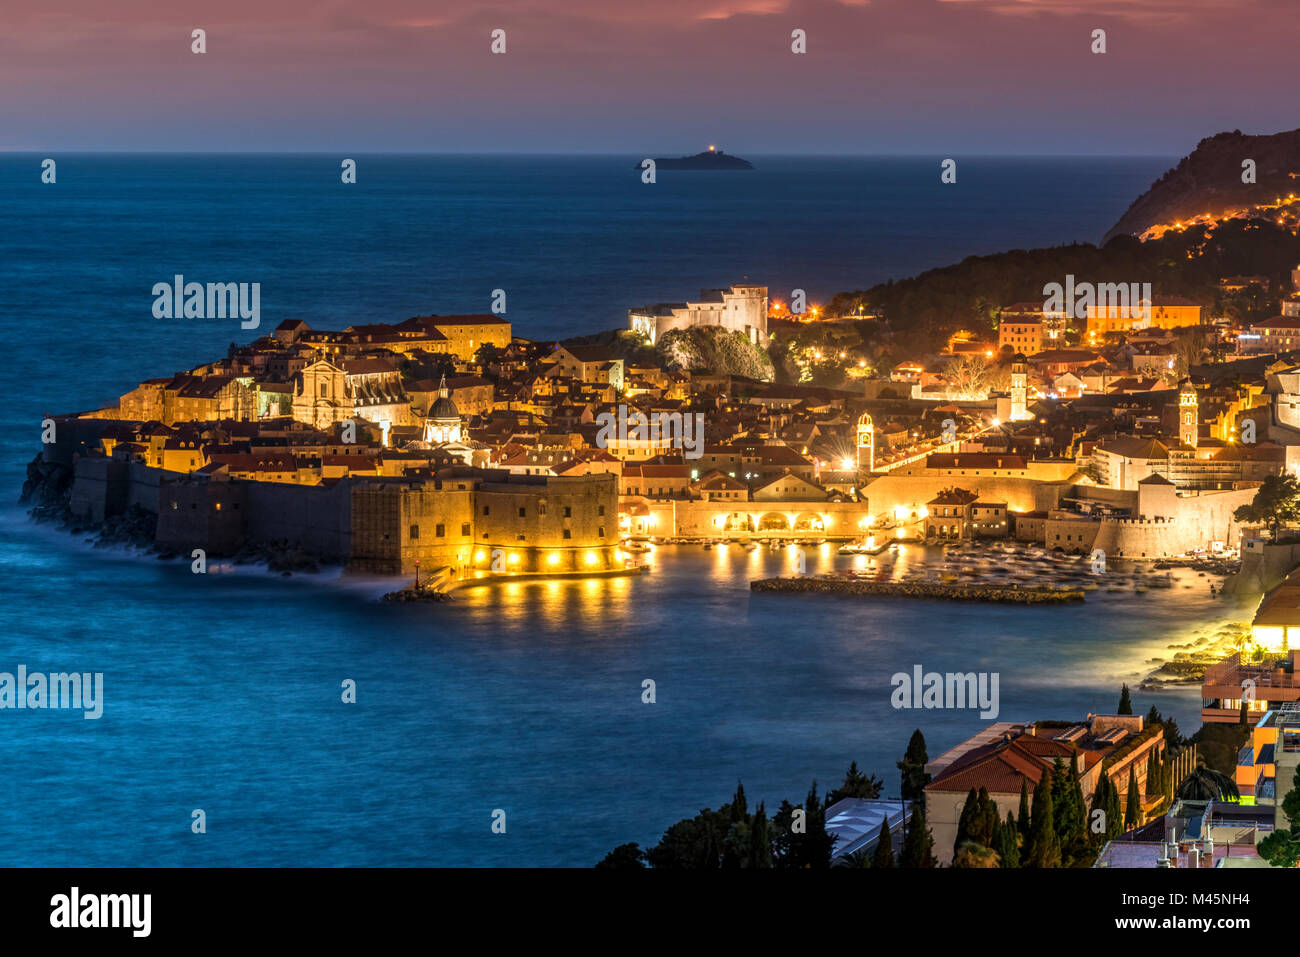 City skyline at dusk, Dubrovnik, Croatia - Stock Image